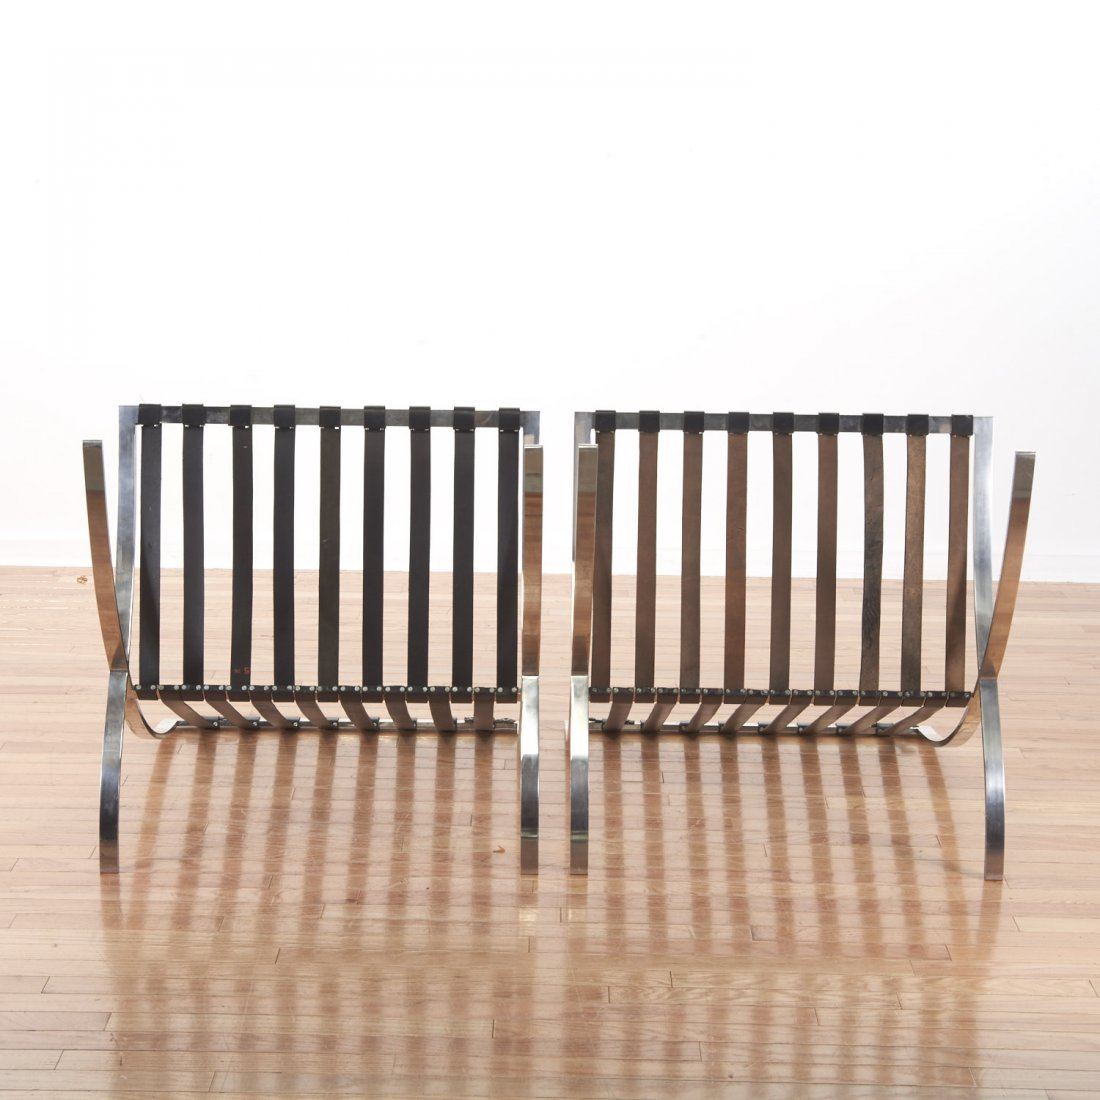 Pair Mies Van der Rohe Barcelona chairs - 5